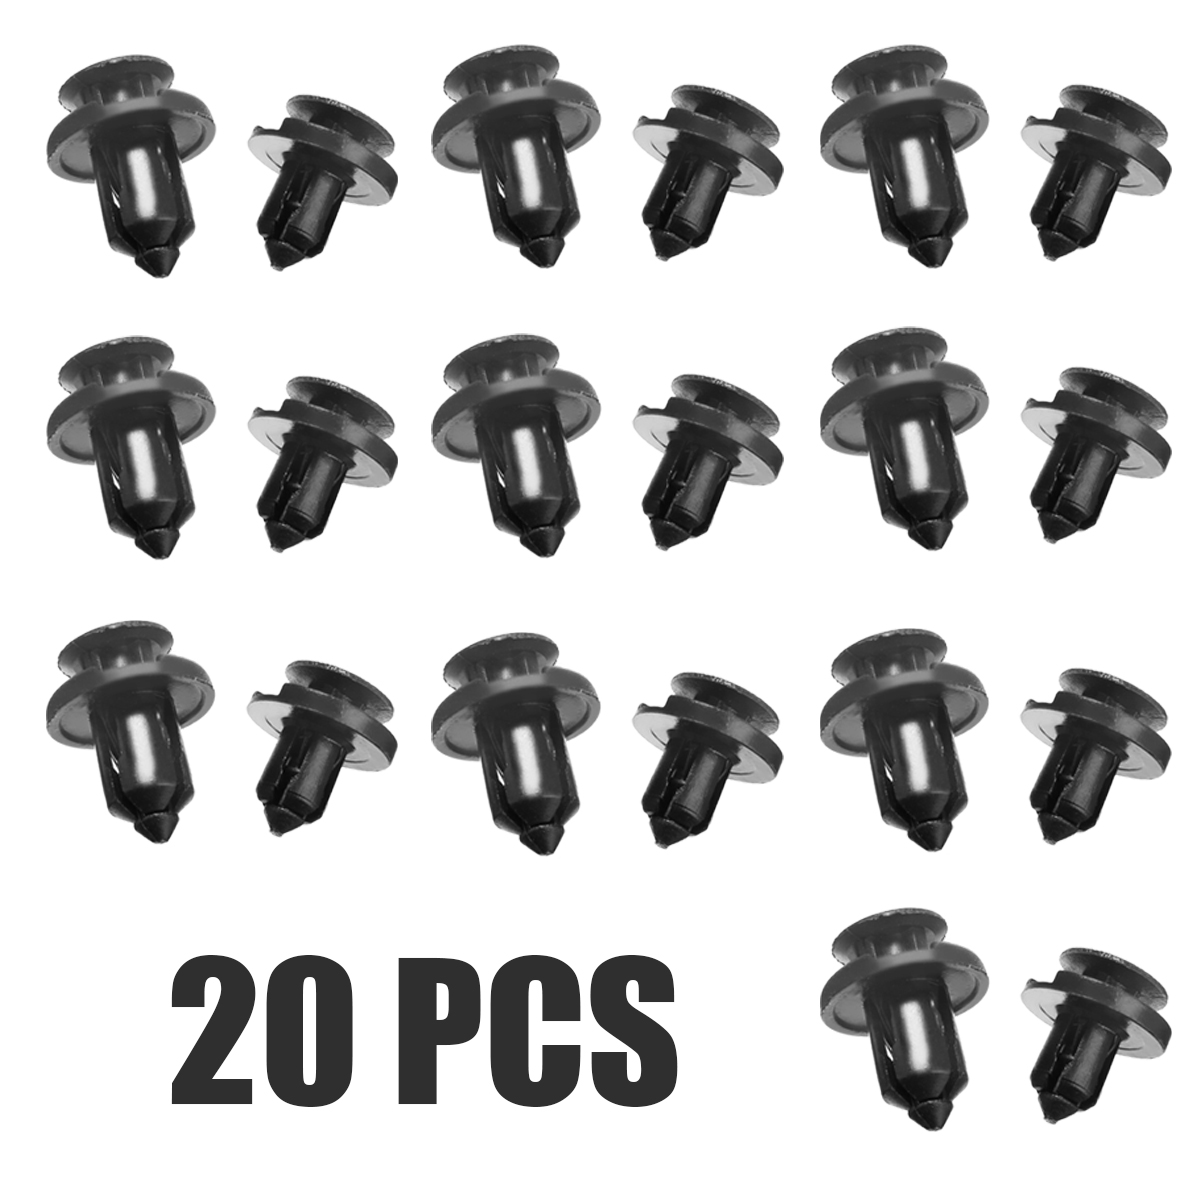 50pcs New Protector Moulding Side Fastener Clips for Honda Civic CRV Acura CL